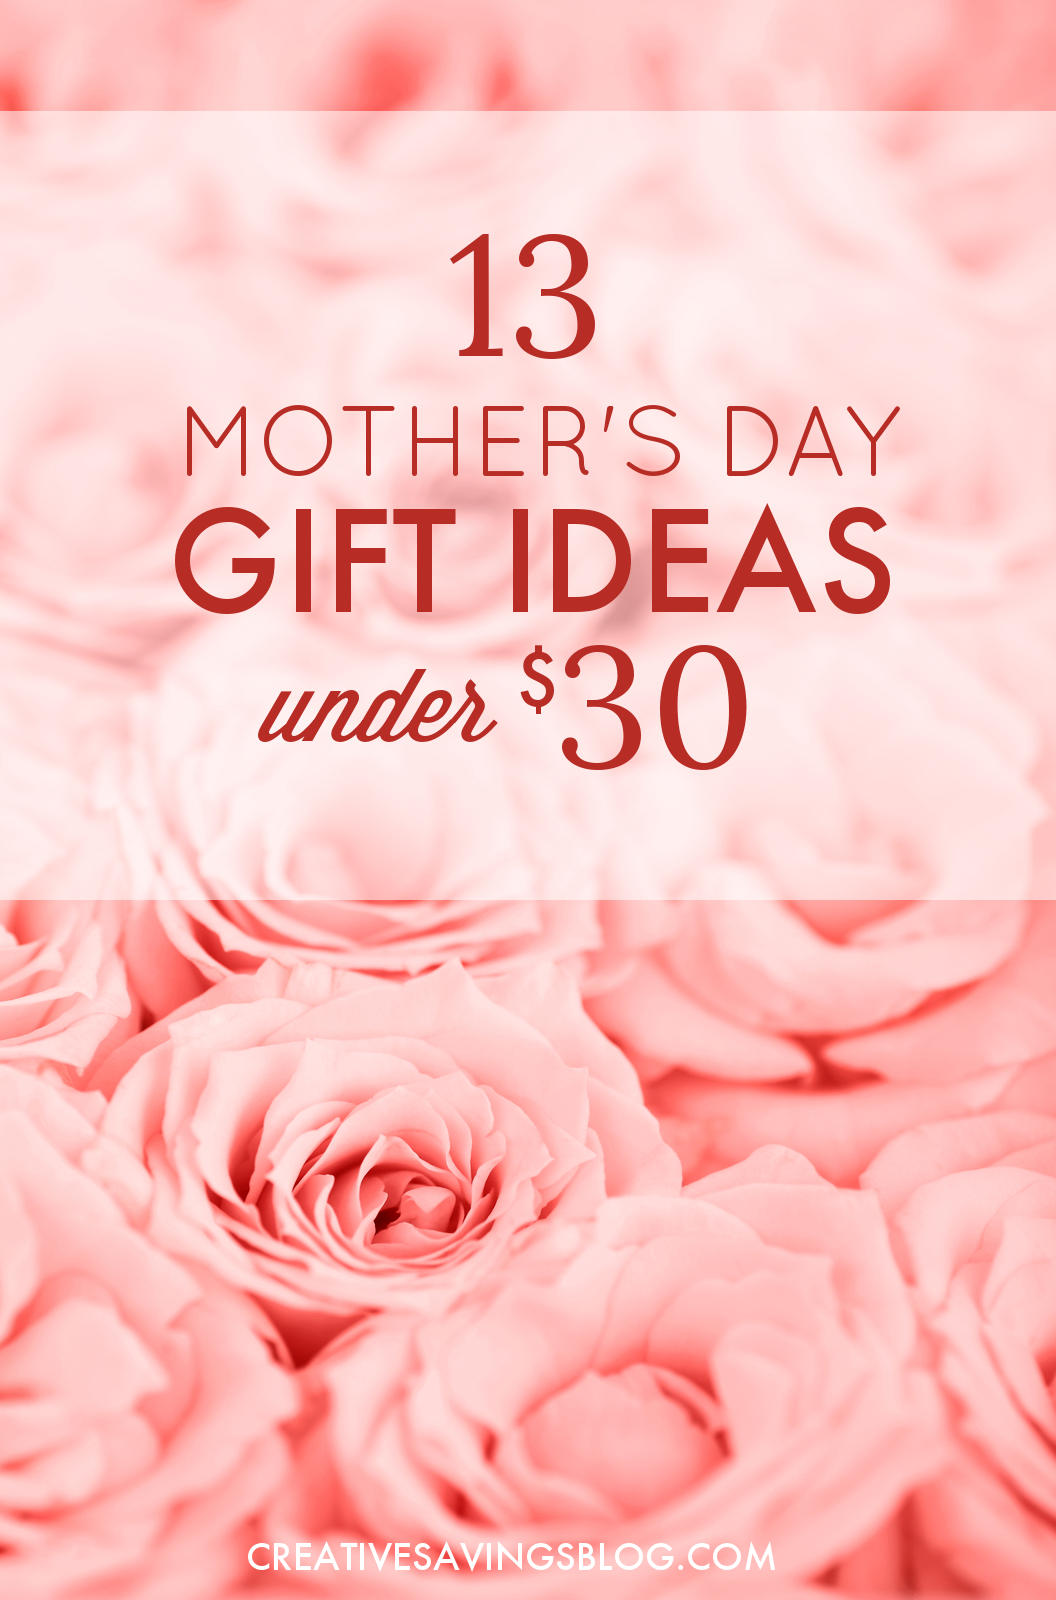 Gifts Ideas For Mothers Day: 13 Mothers Day Gift Ideas Under $30